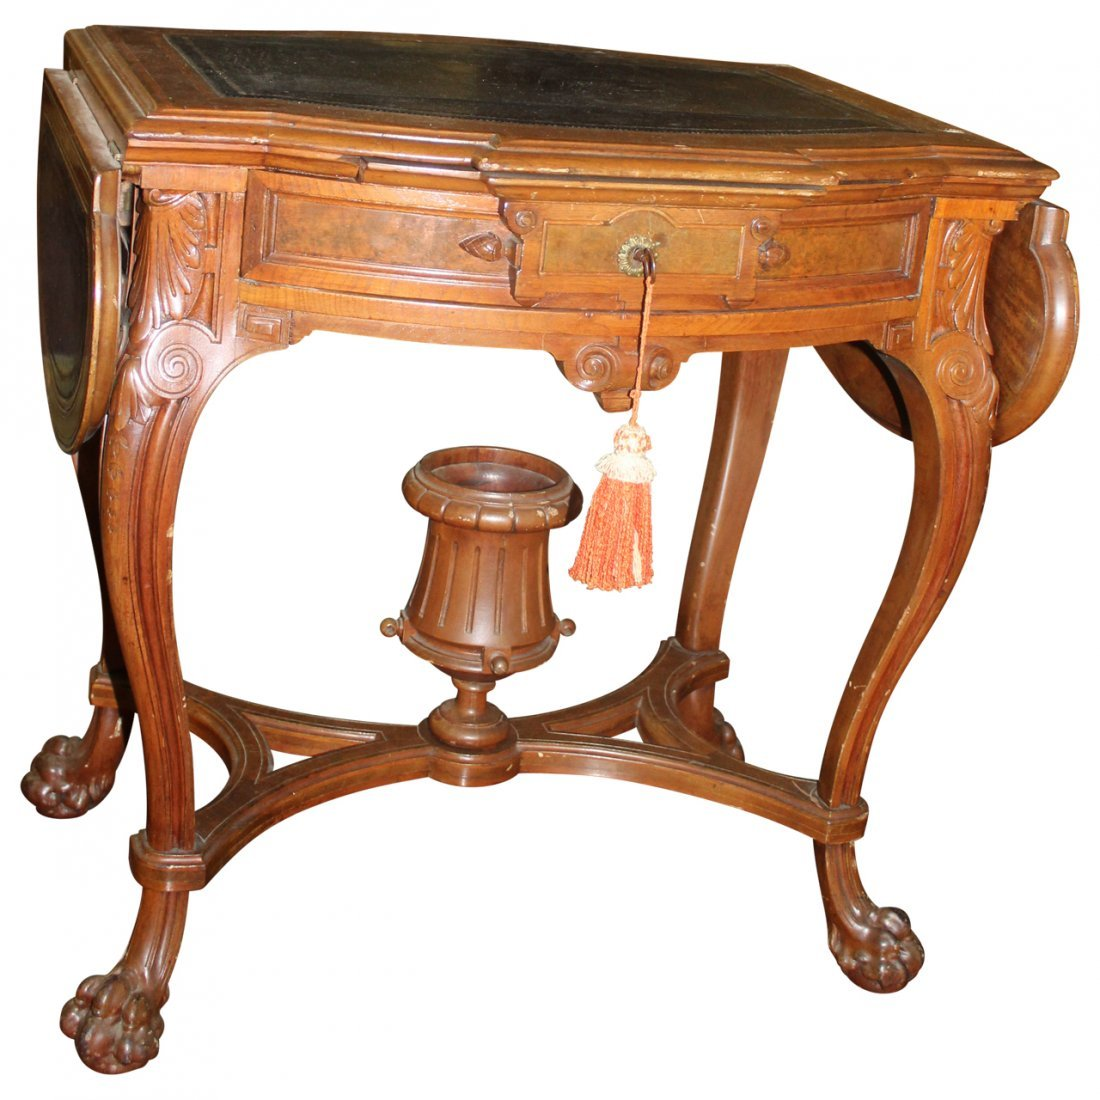 Outstanding 1860 Sewing Stand